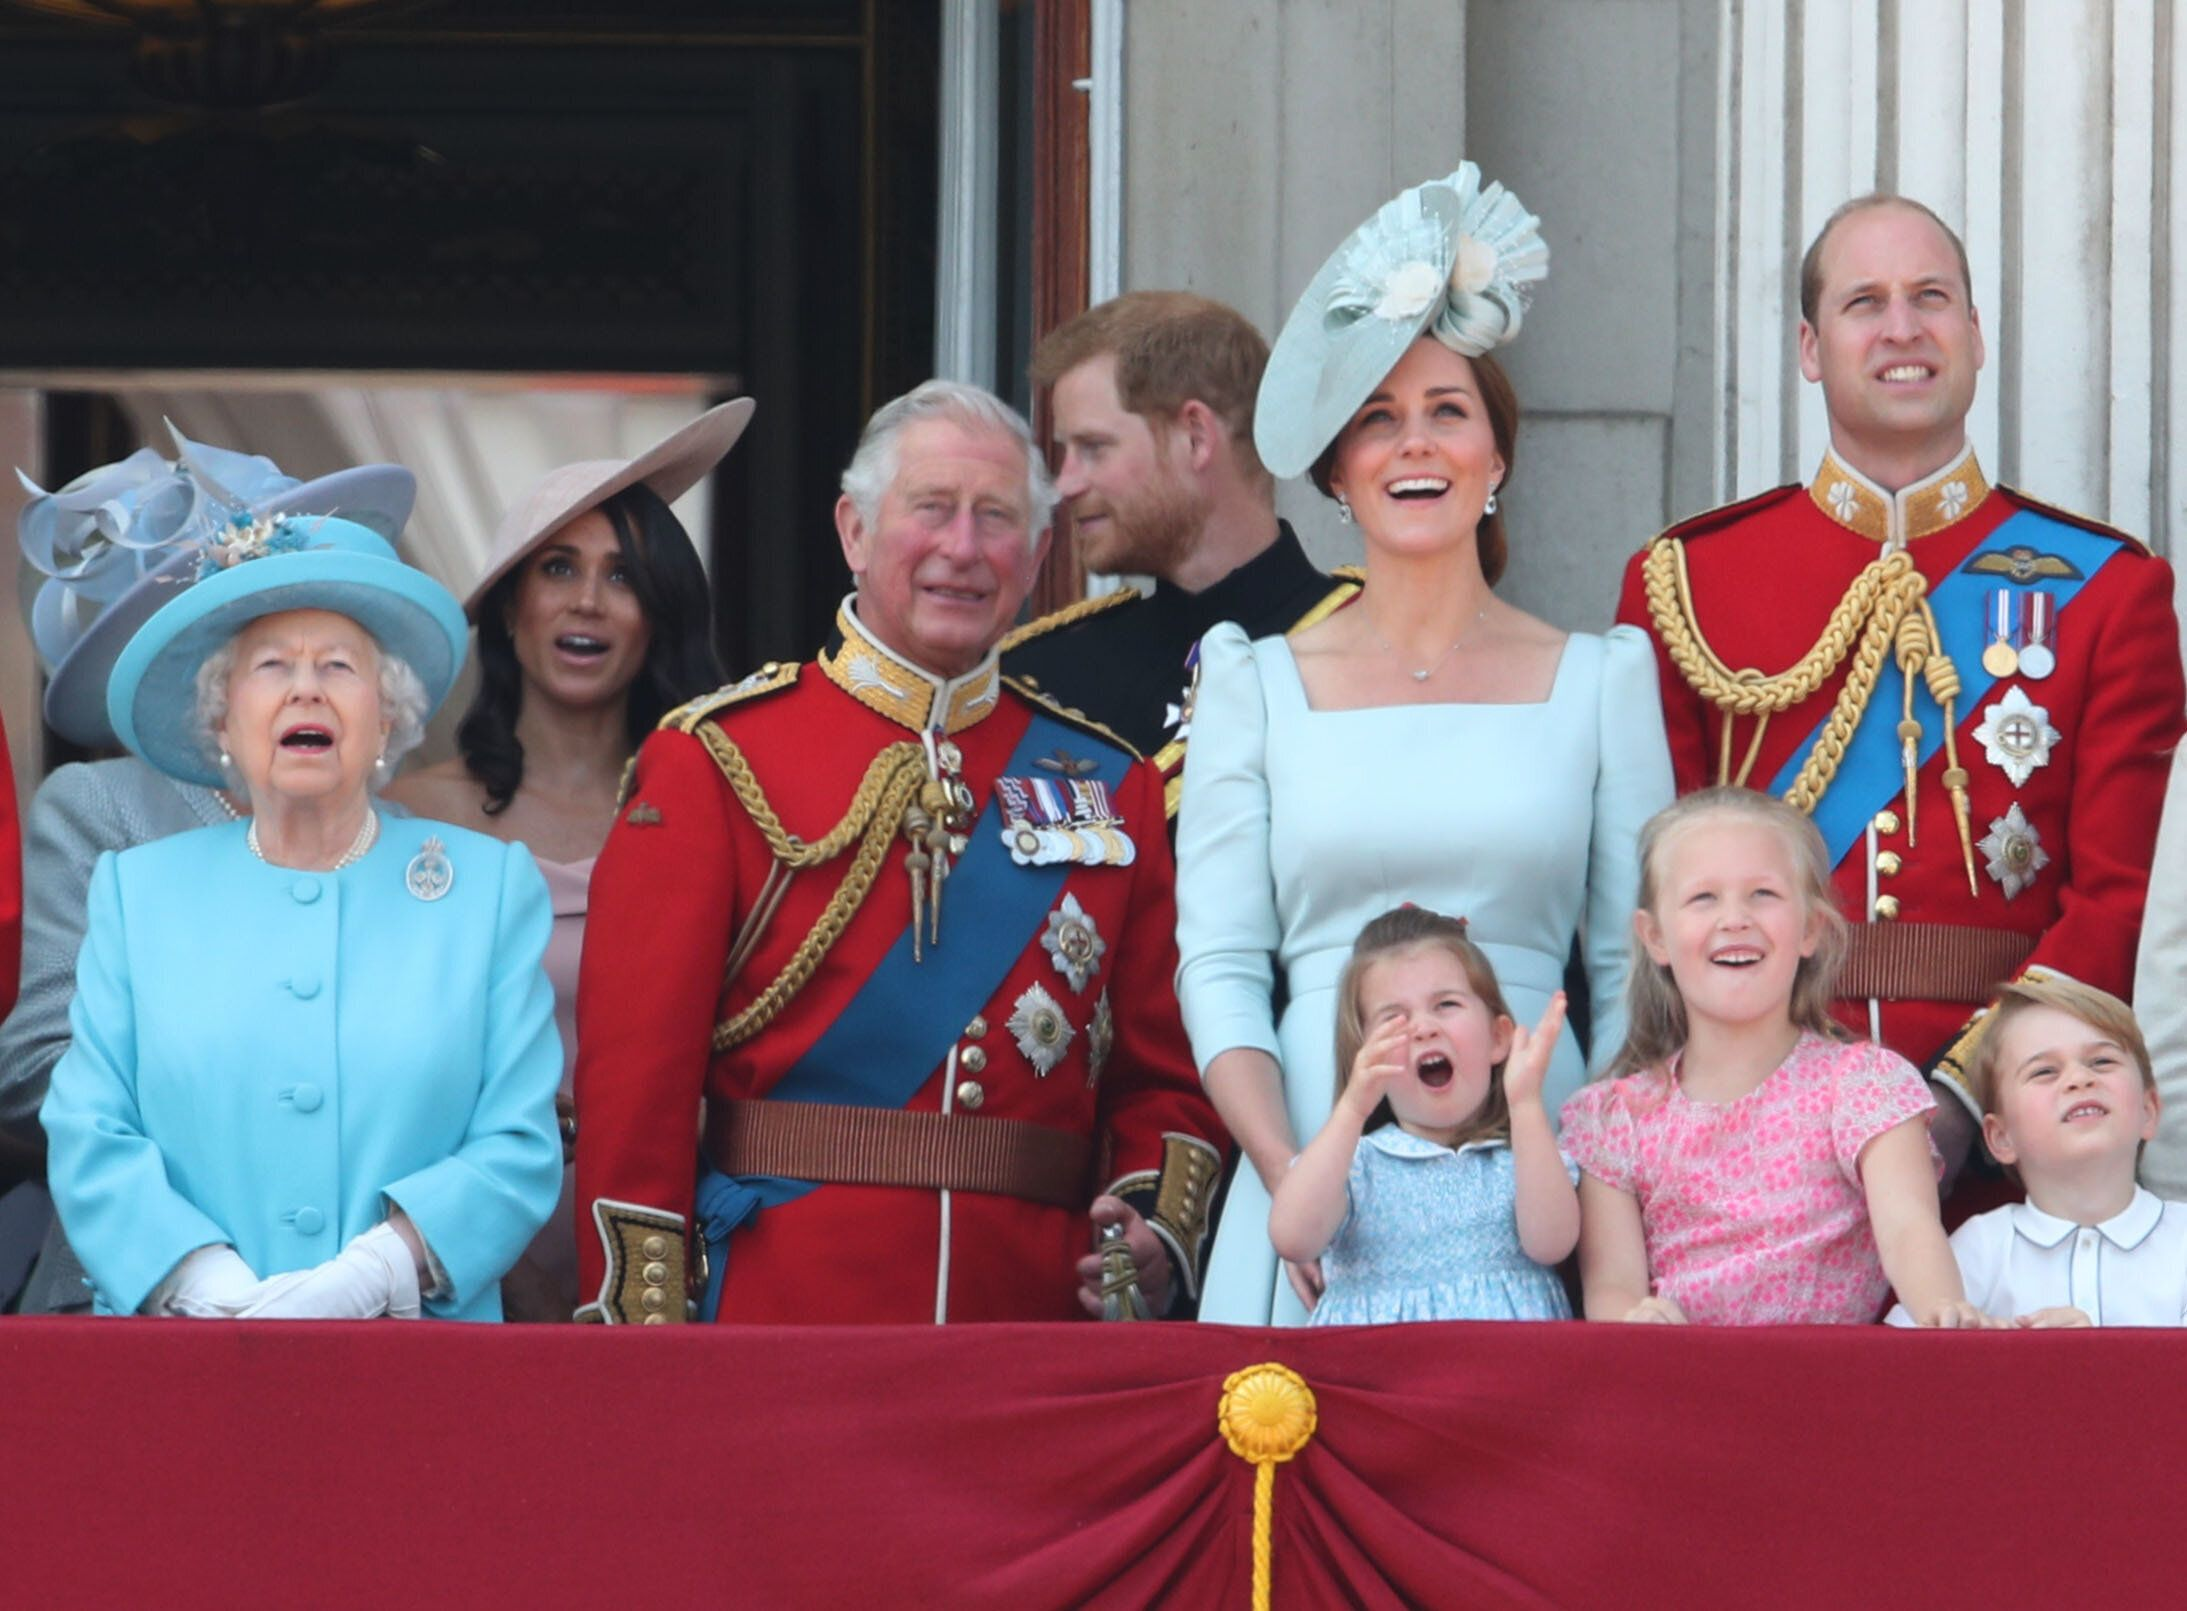 The Queen, Prince Charles, the Duke and Duchess of Sussex, the Duke and Duchess of Cambridge, Princess Charlotte, Savannah Phillips and Prince George at Trooping the Colour 2018 [Photo: PA]